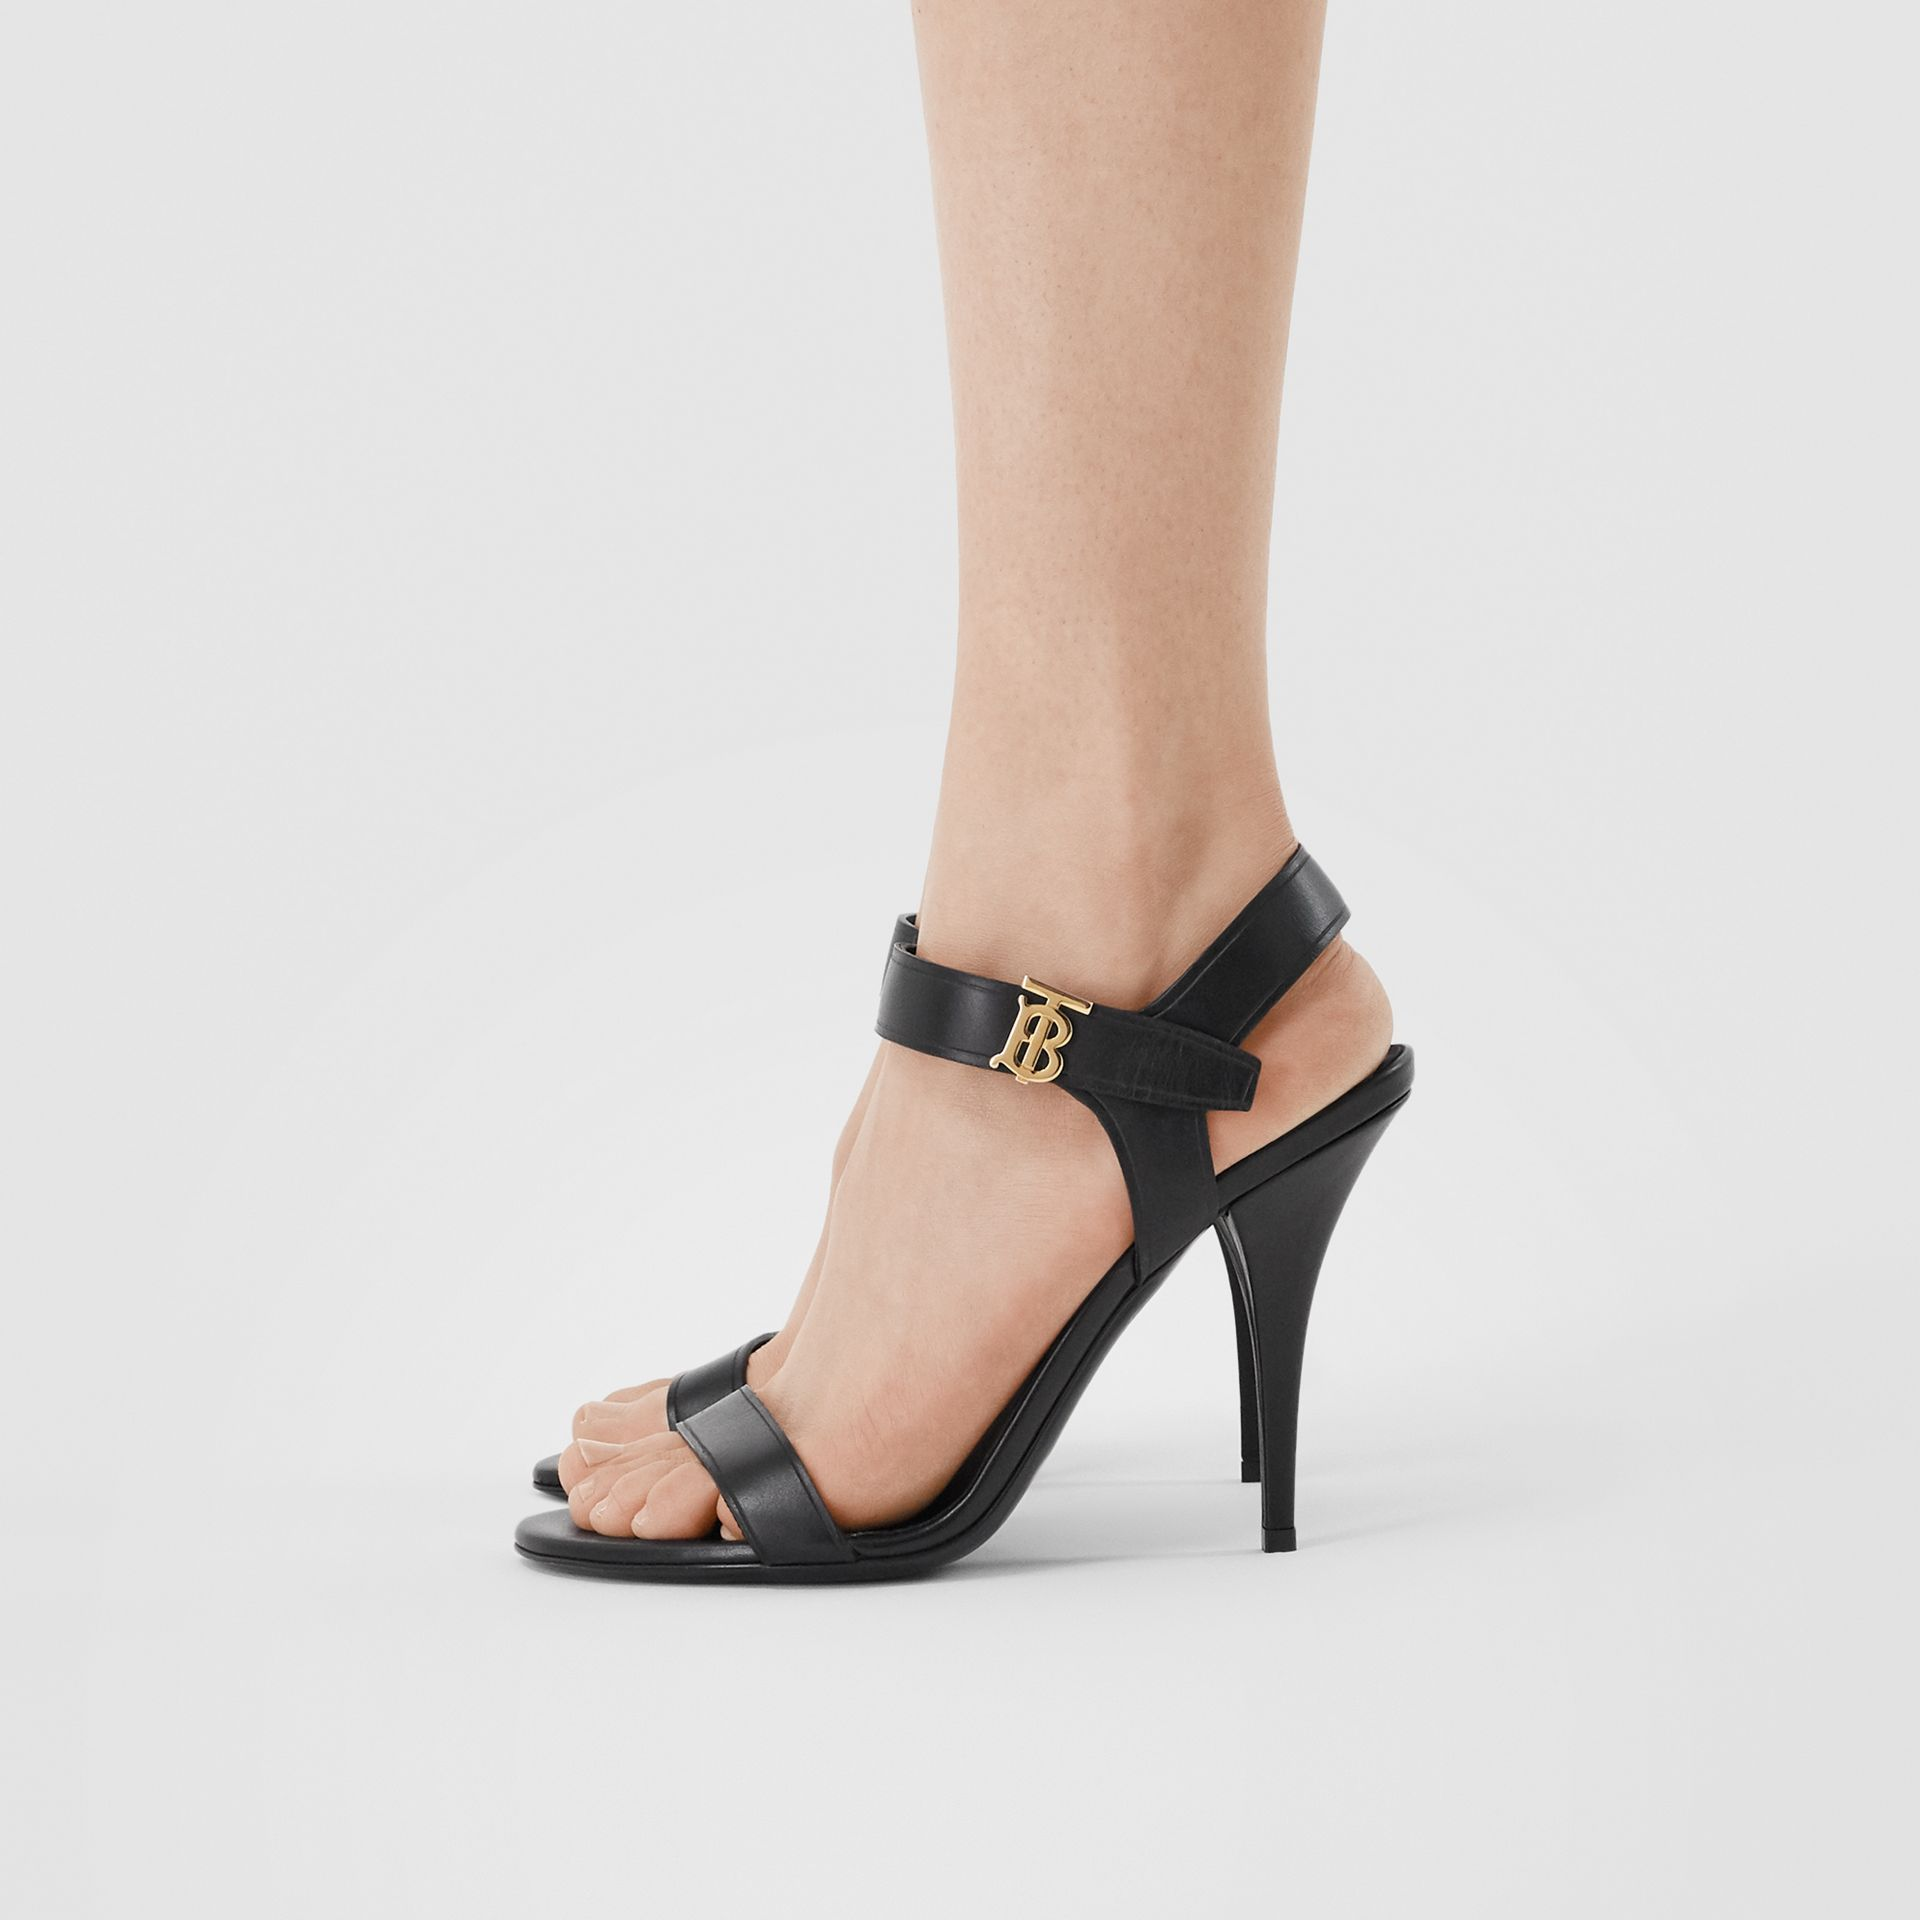 Monogram Motif Leather Sandals in Black - Women | Burberry United Kingdom - gallery image 2